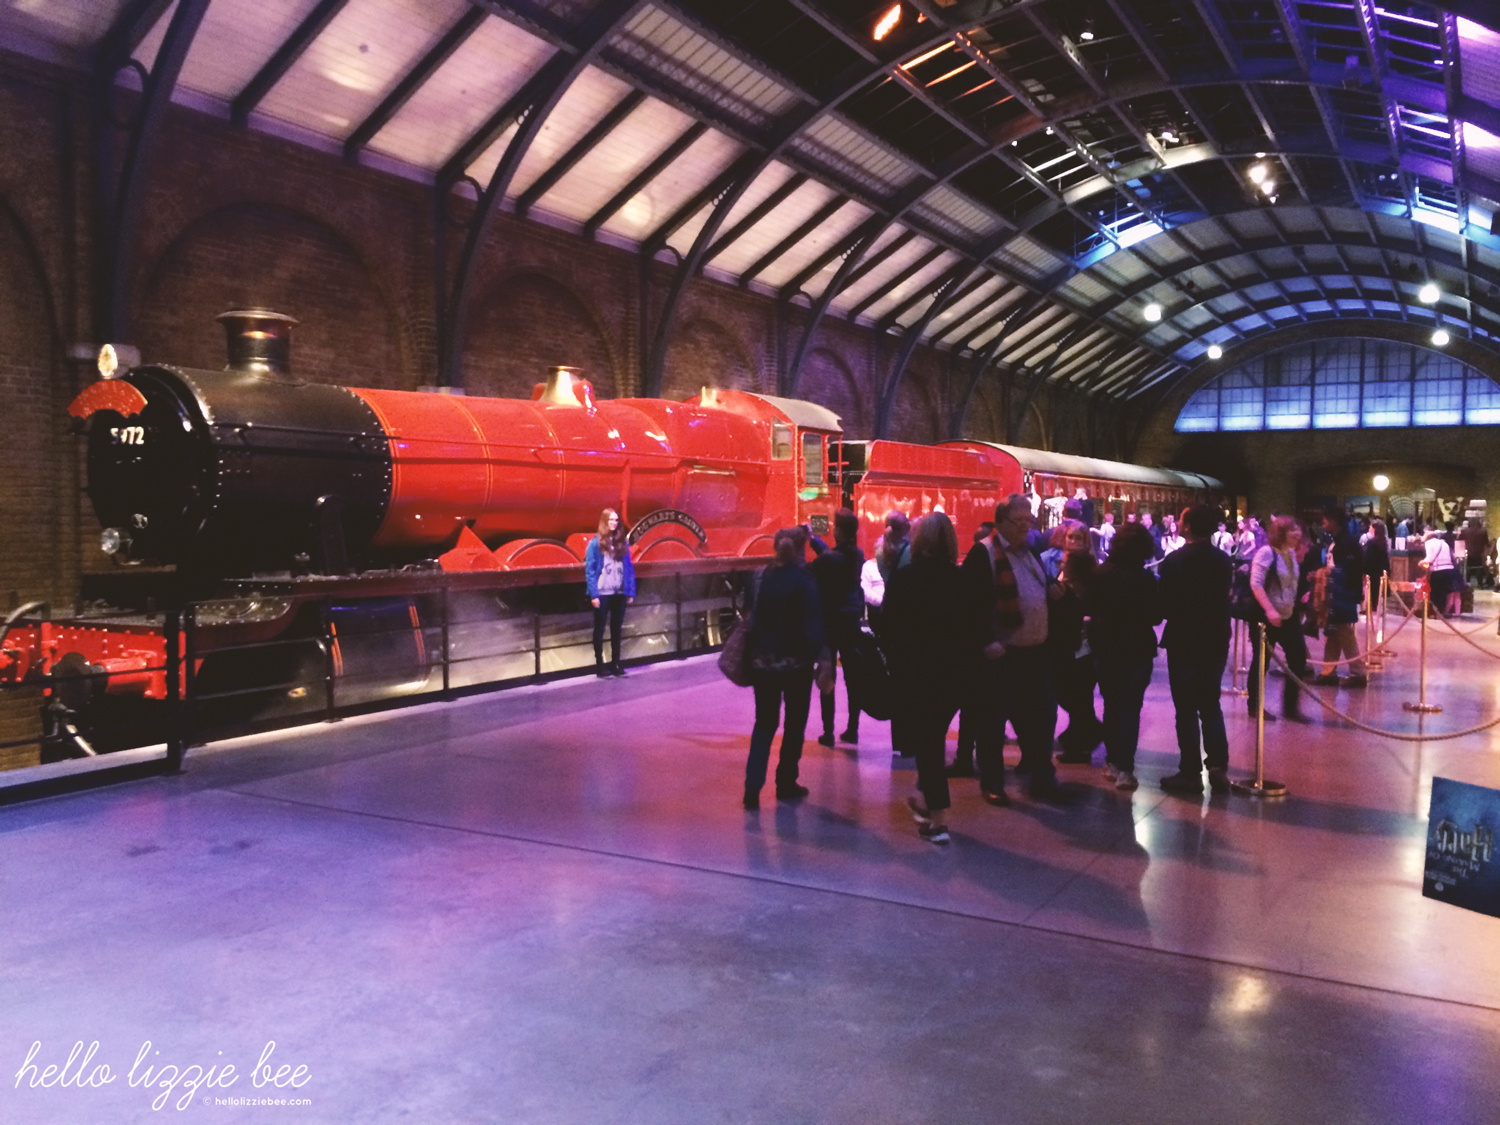 hogwarts express, train